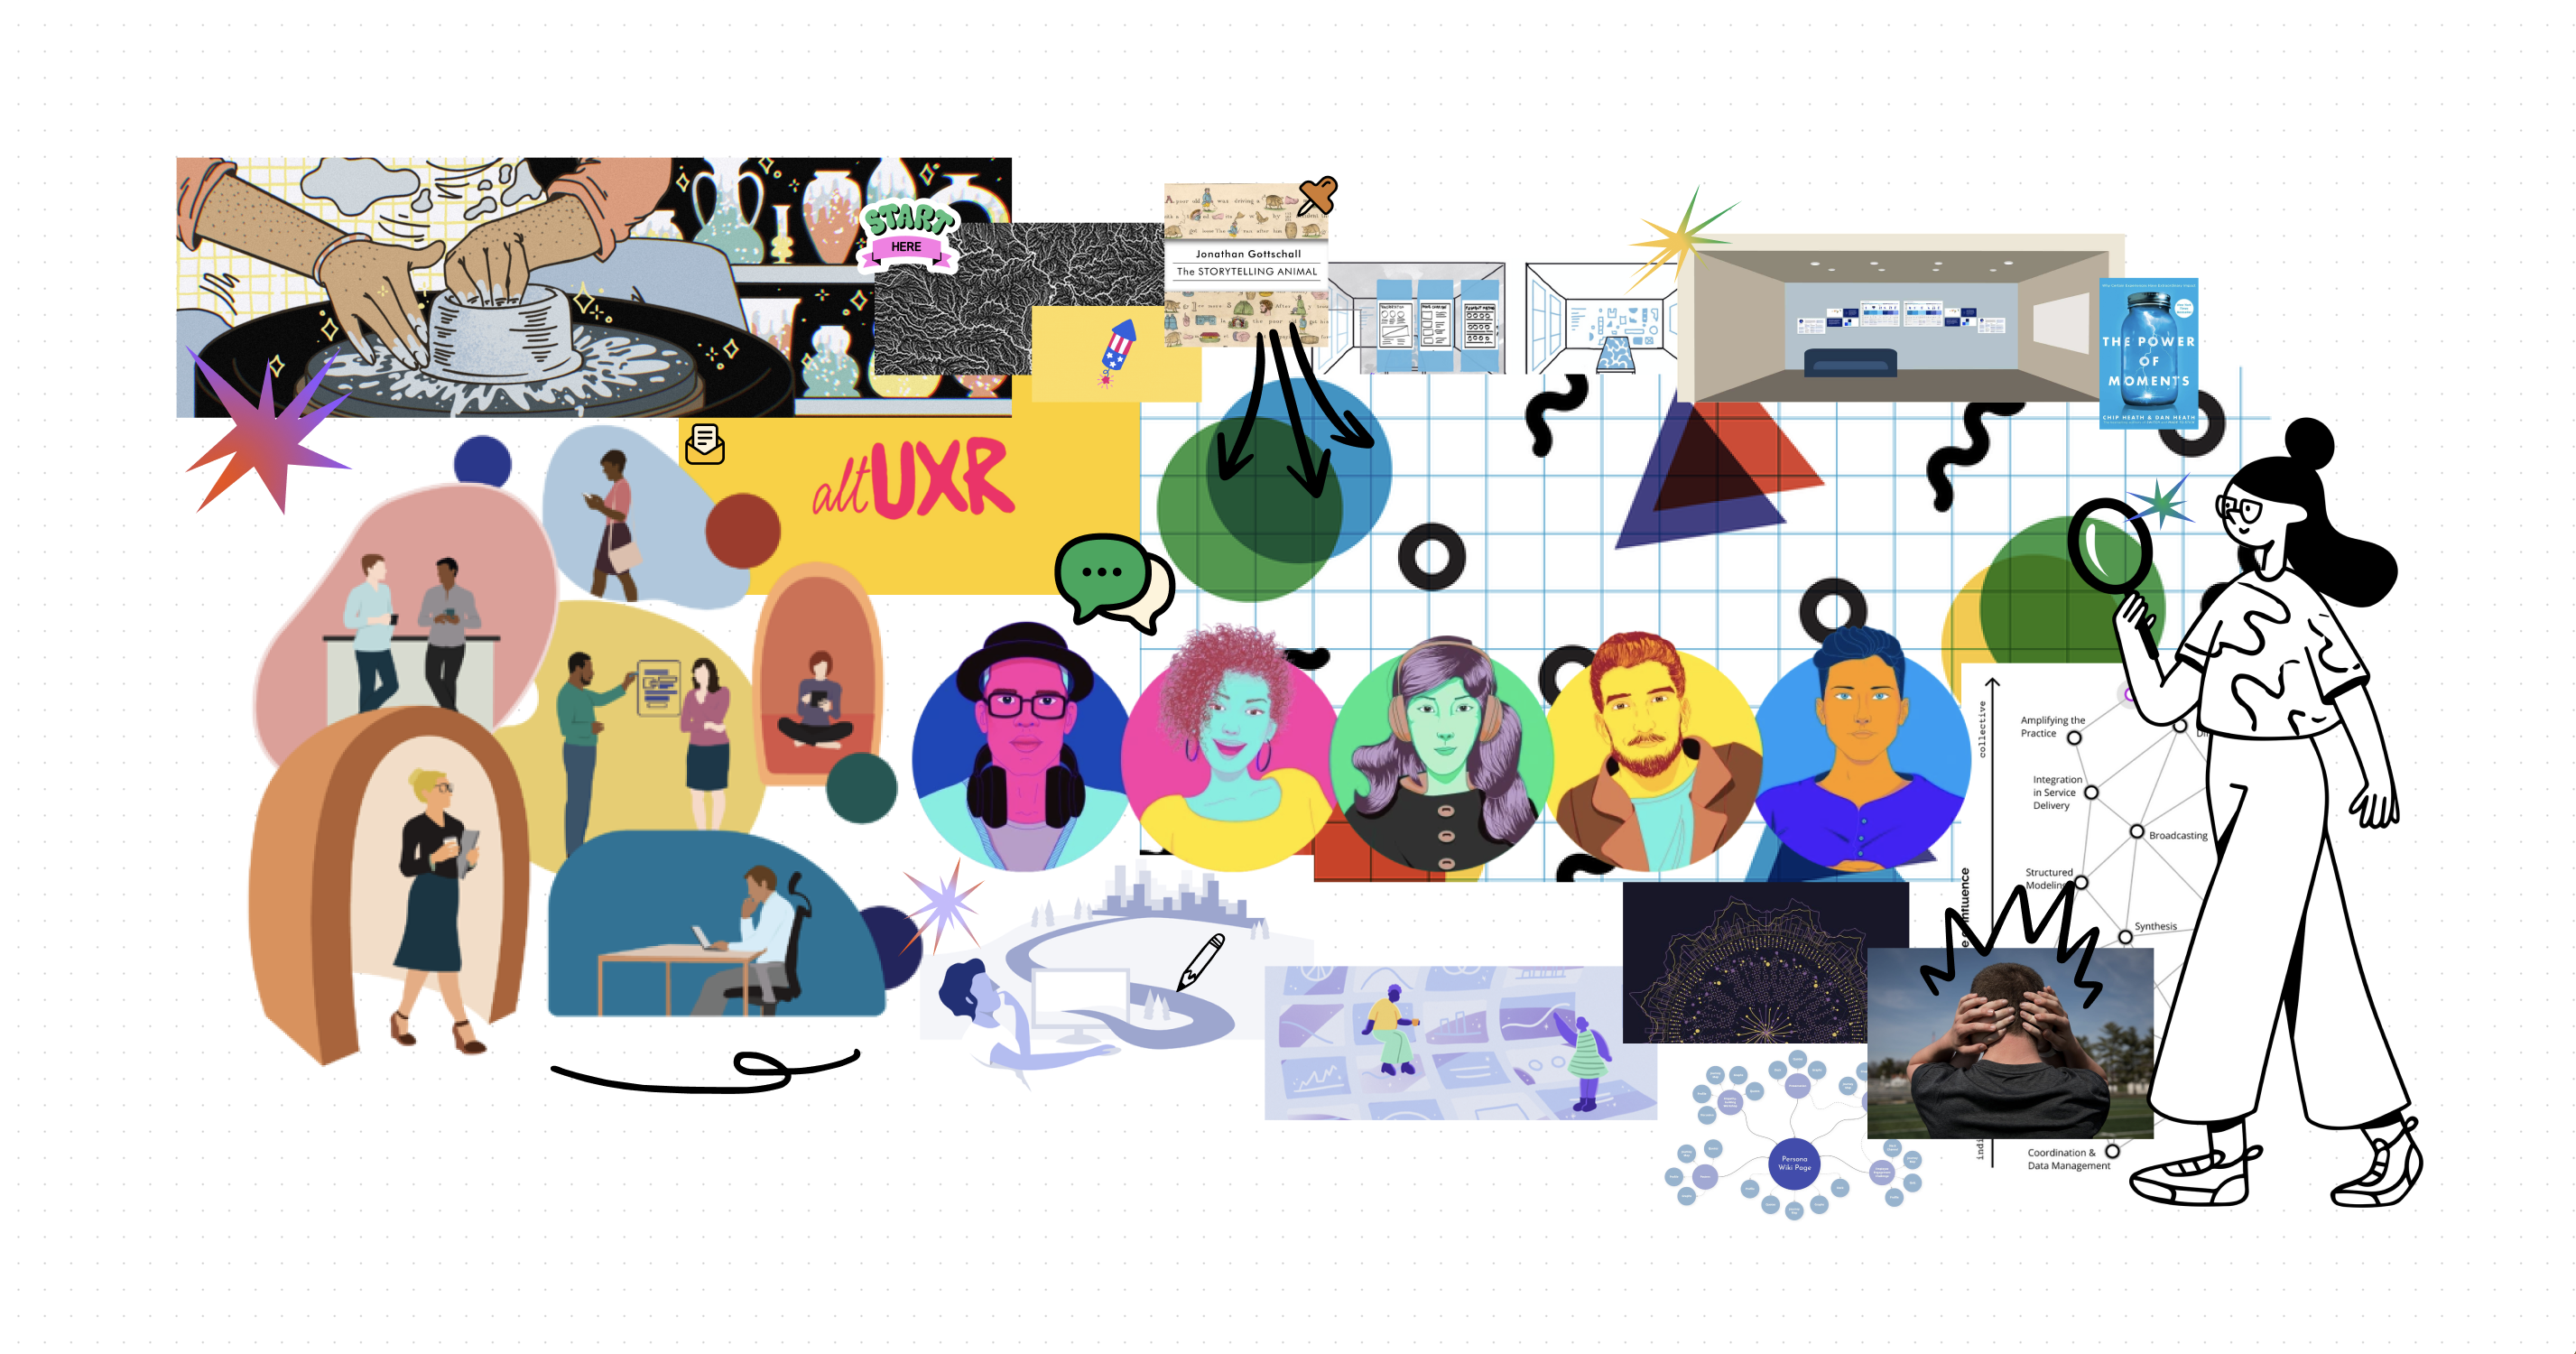 An image cluster made up of illustrations in various styles showing people working and coversing